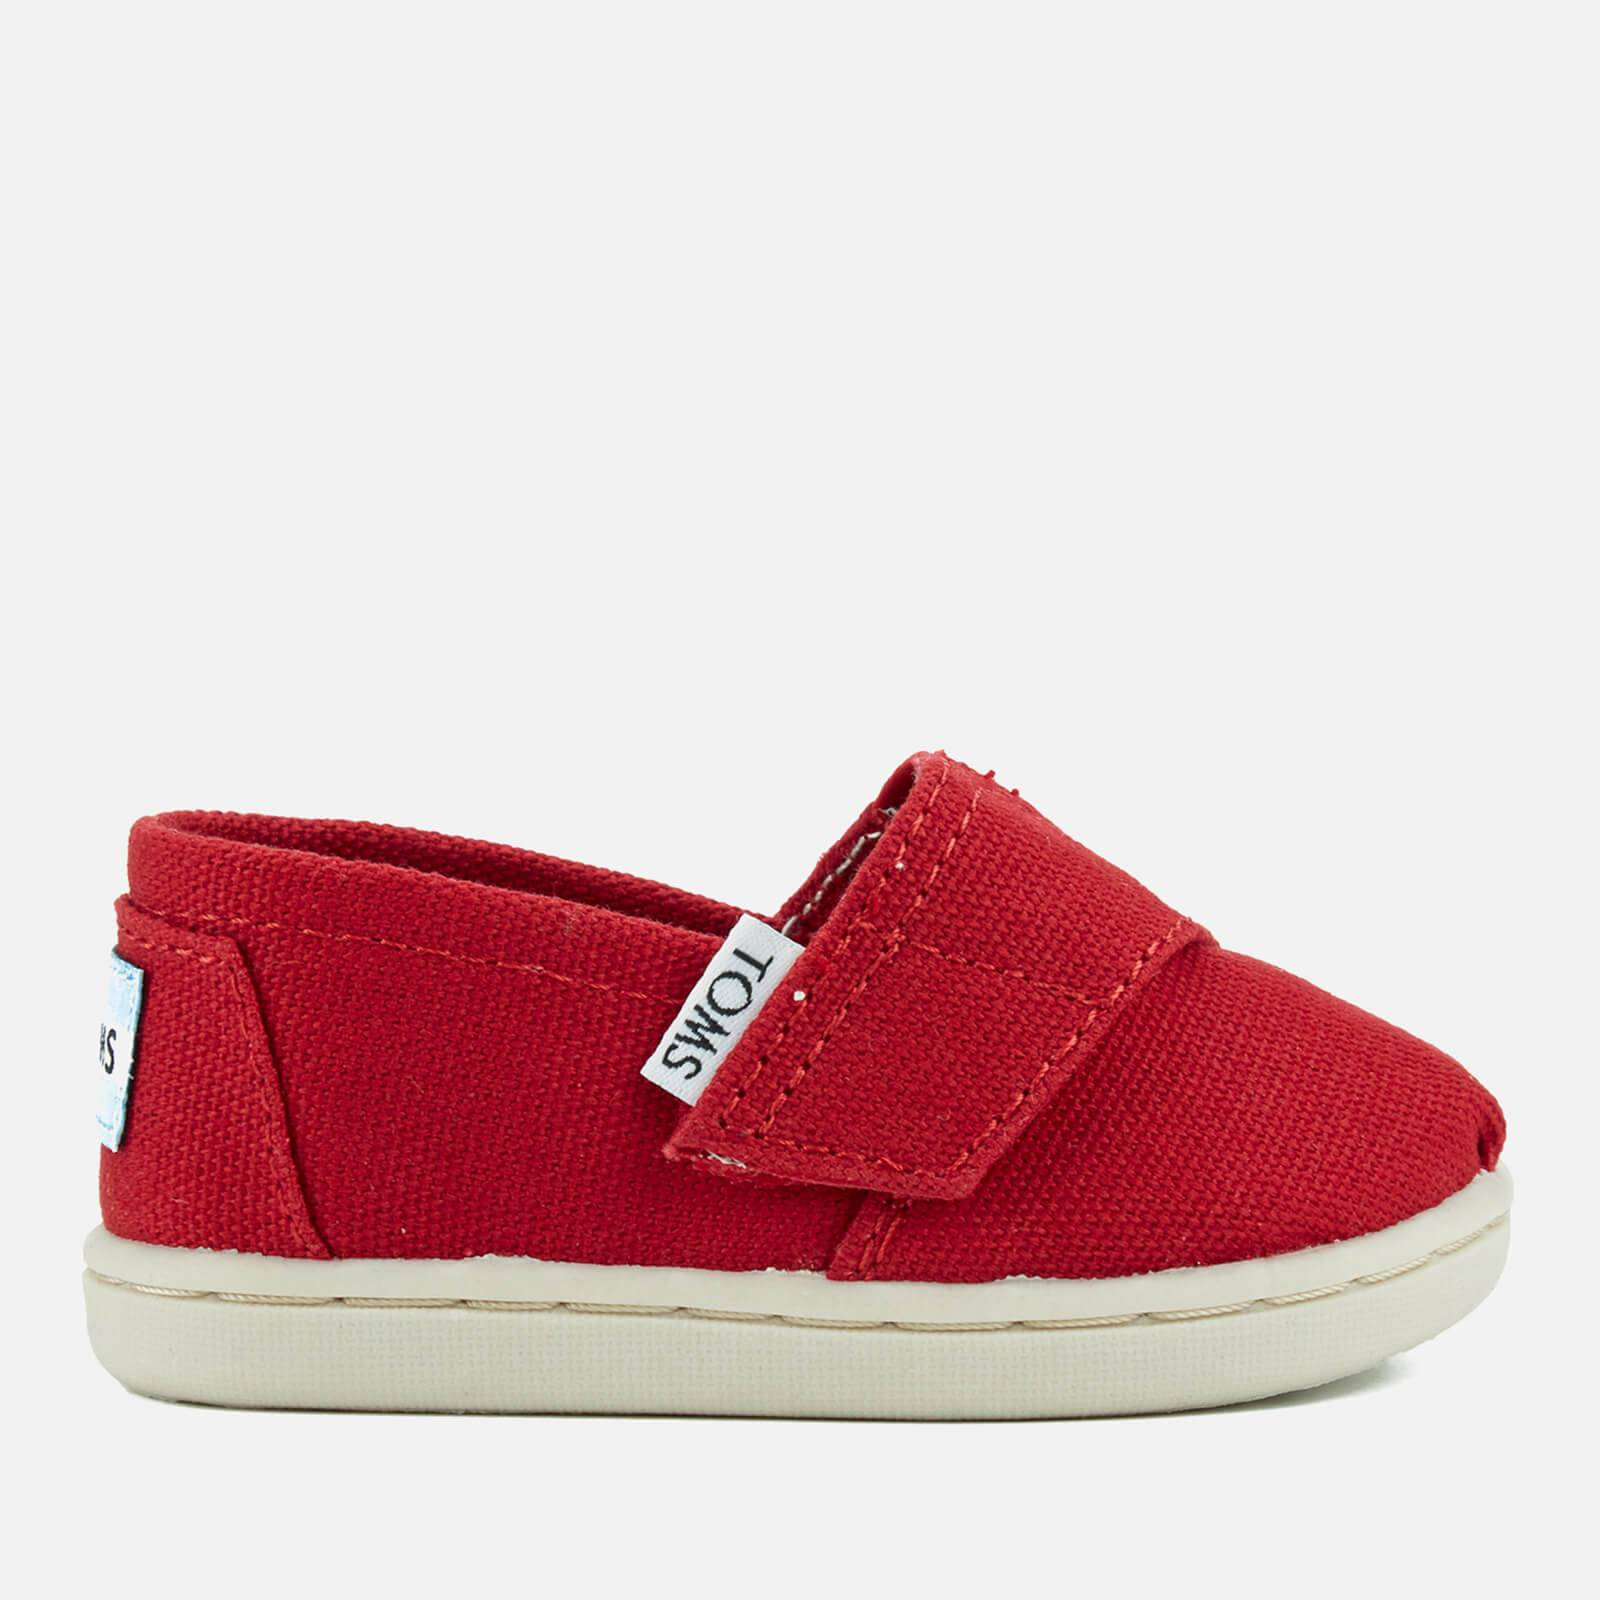 TOMS Toddlers' Seasonal Classics Slip-On Pumps - Red - UK 3/US 4 Toddlers